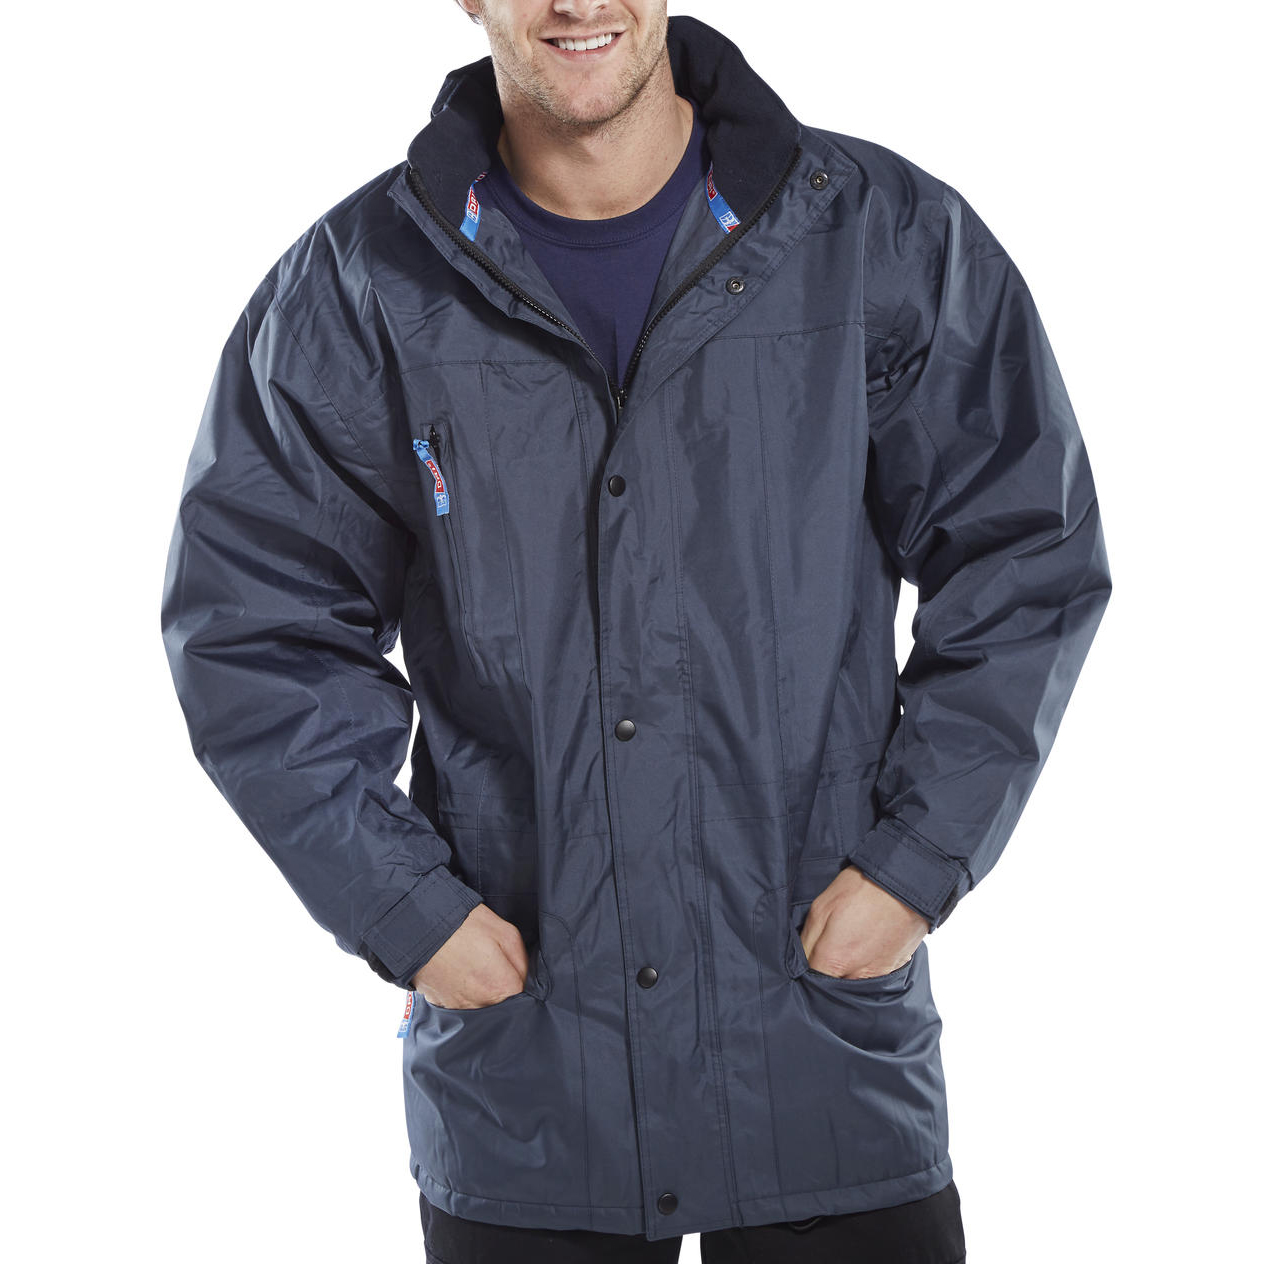 B-Dri Weatherproof Guardian Jacket Concealed Hood Medium Navy Blue Ref GU88PNM *Up to 3 Day Leadtime*